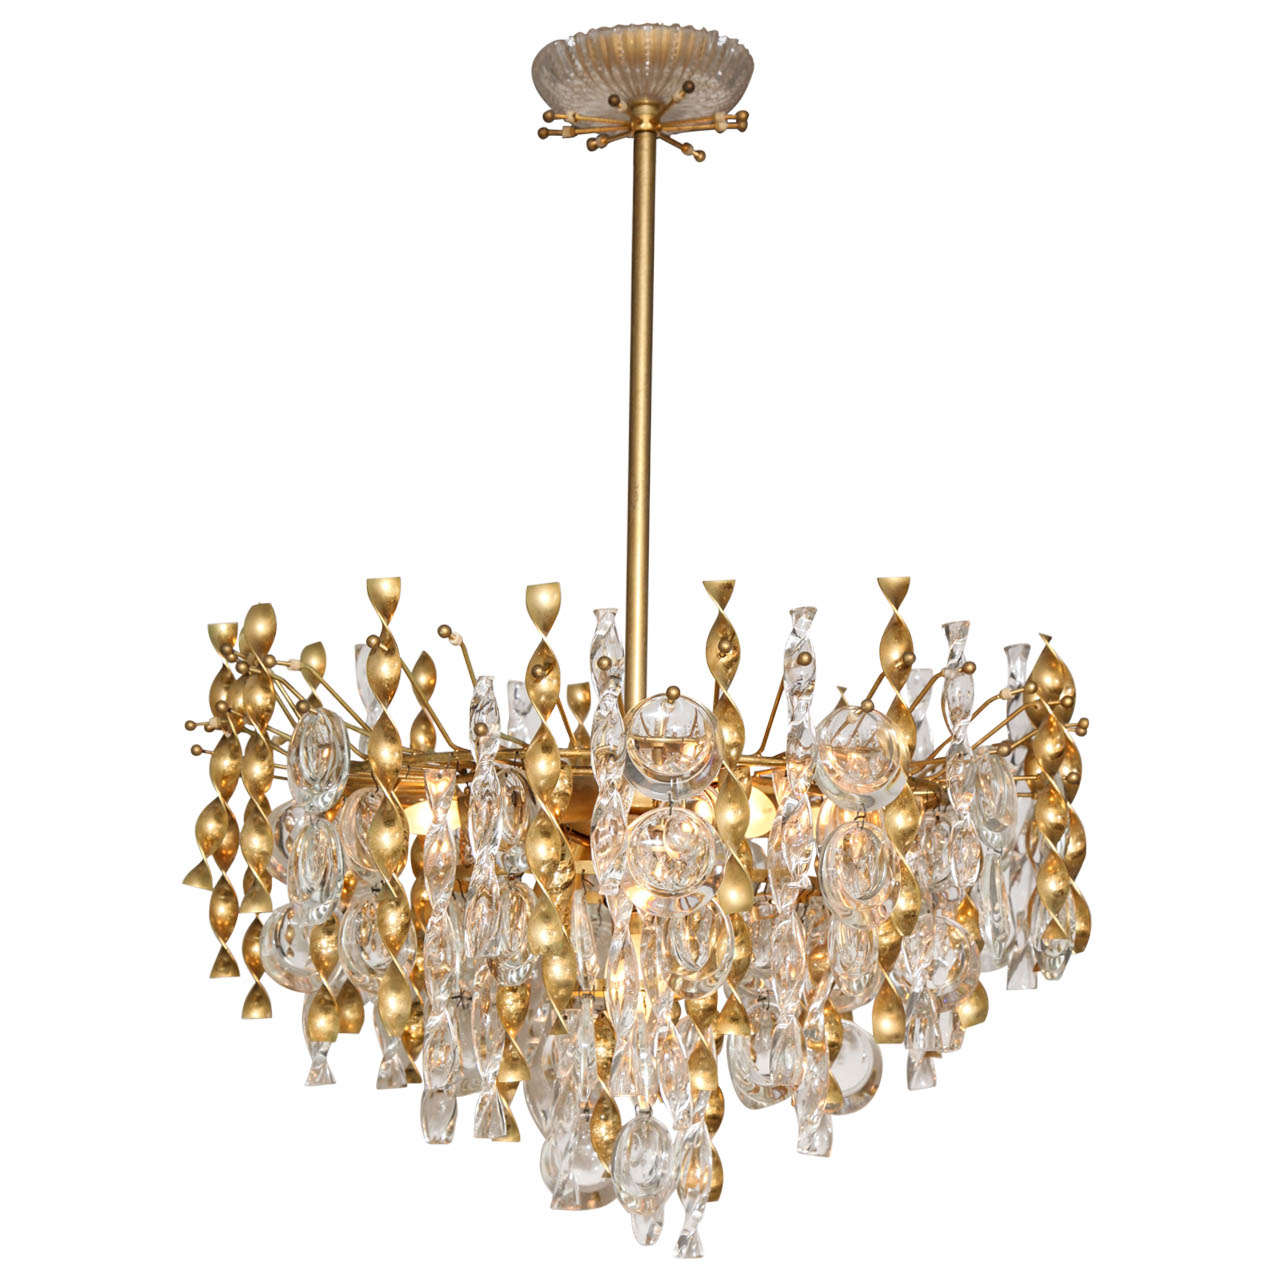 Crystal Chandelier Vs Glass: Sciolari Crystal Lens Pendant Chandelier With Glass And